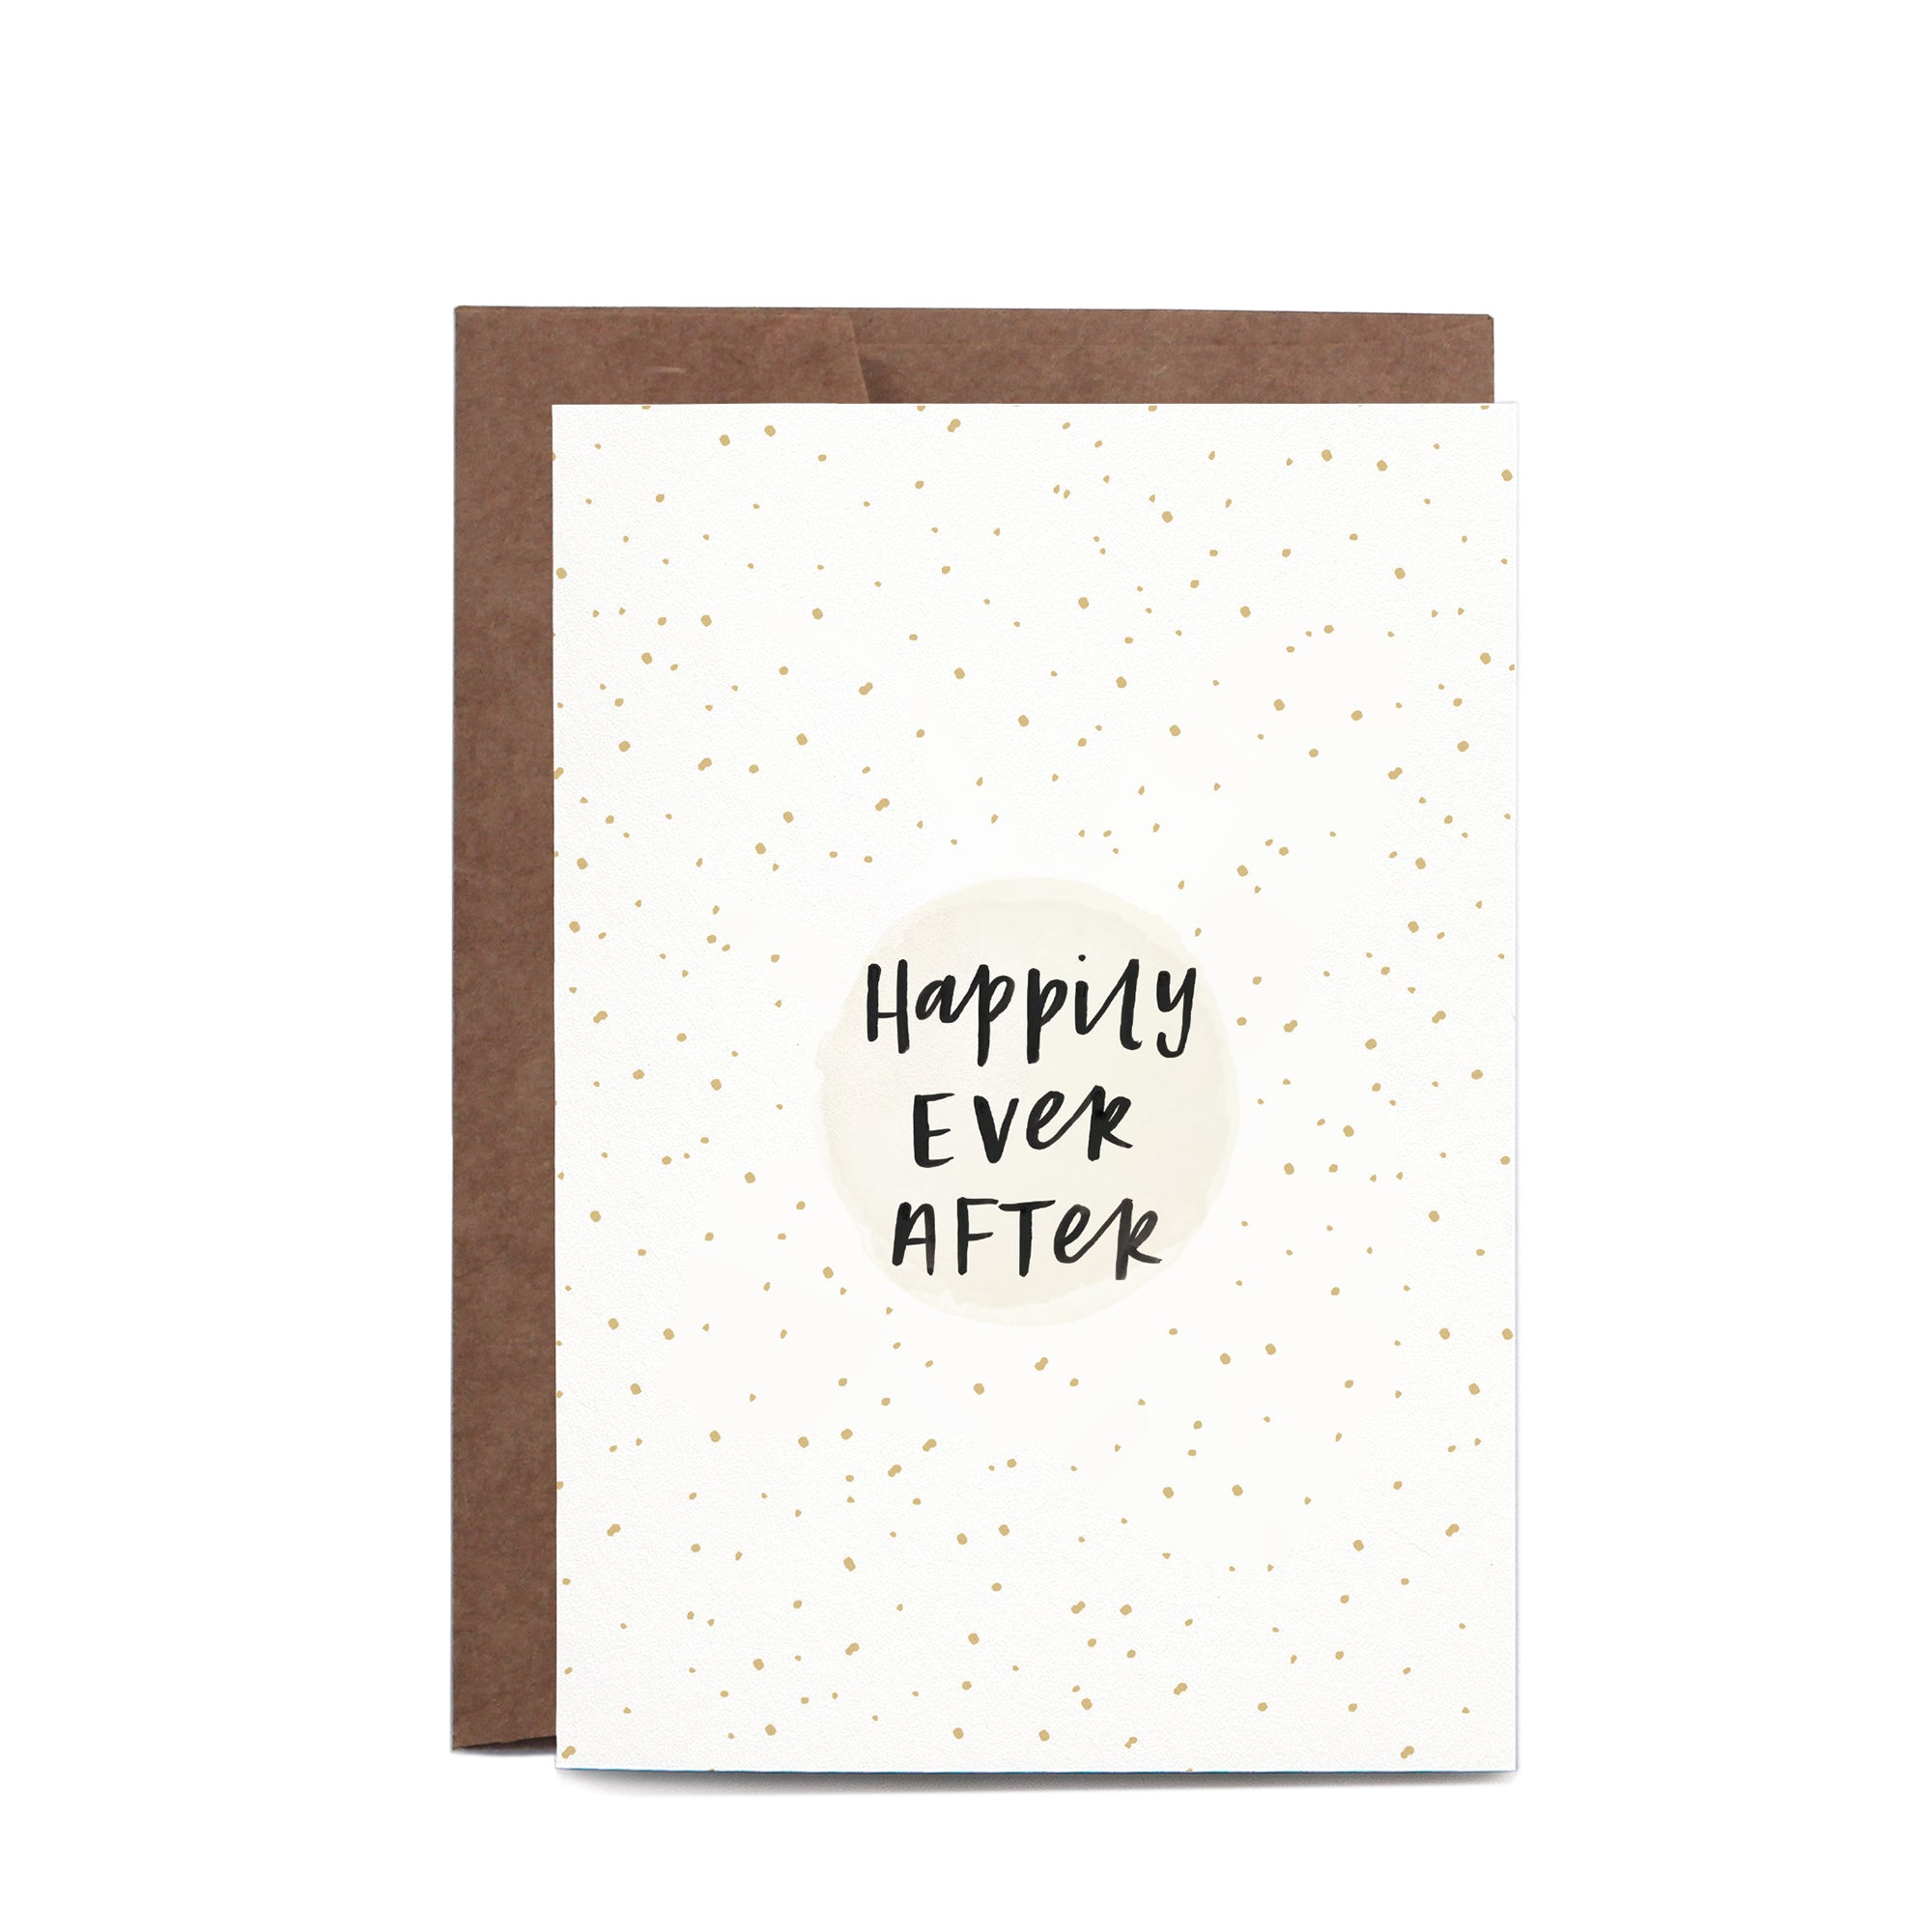 Happily Ever After Card | In the Daylight